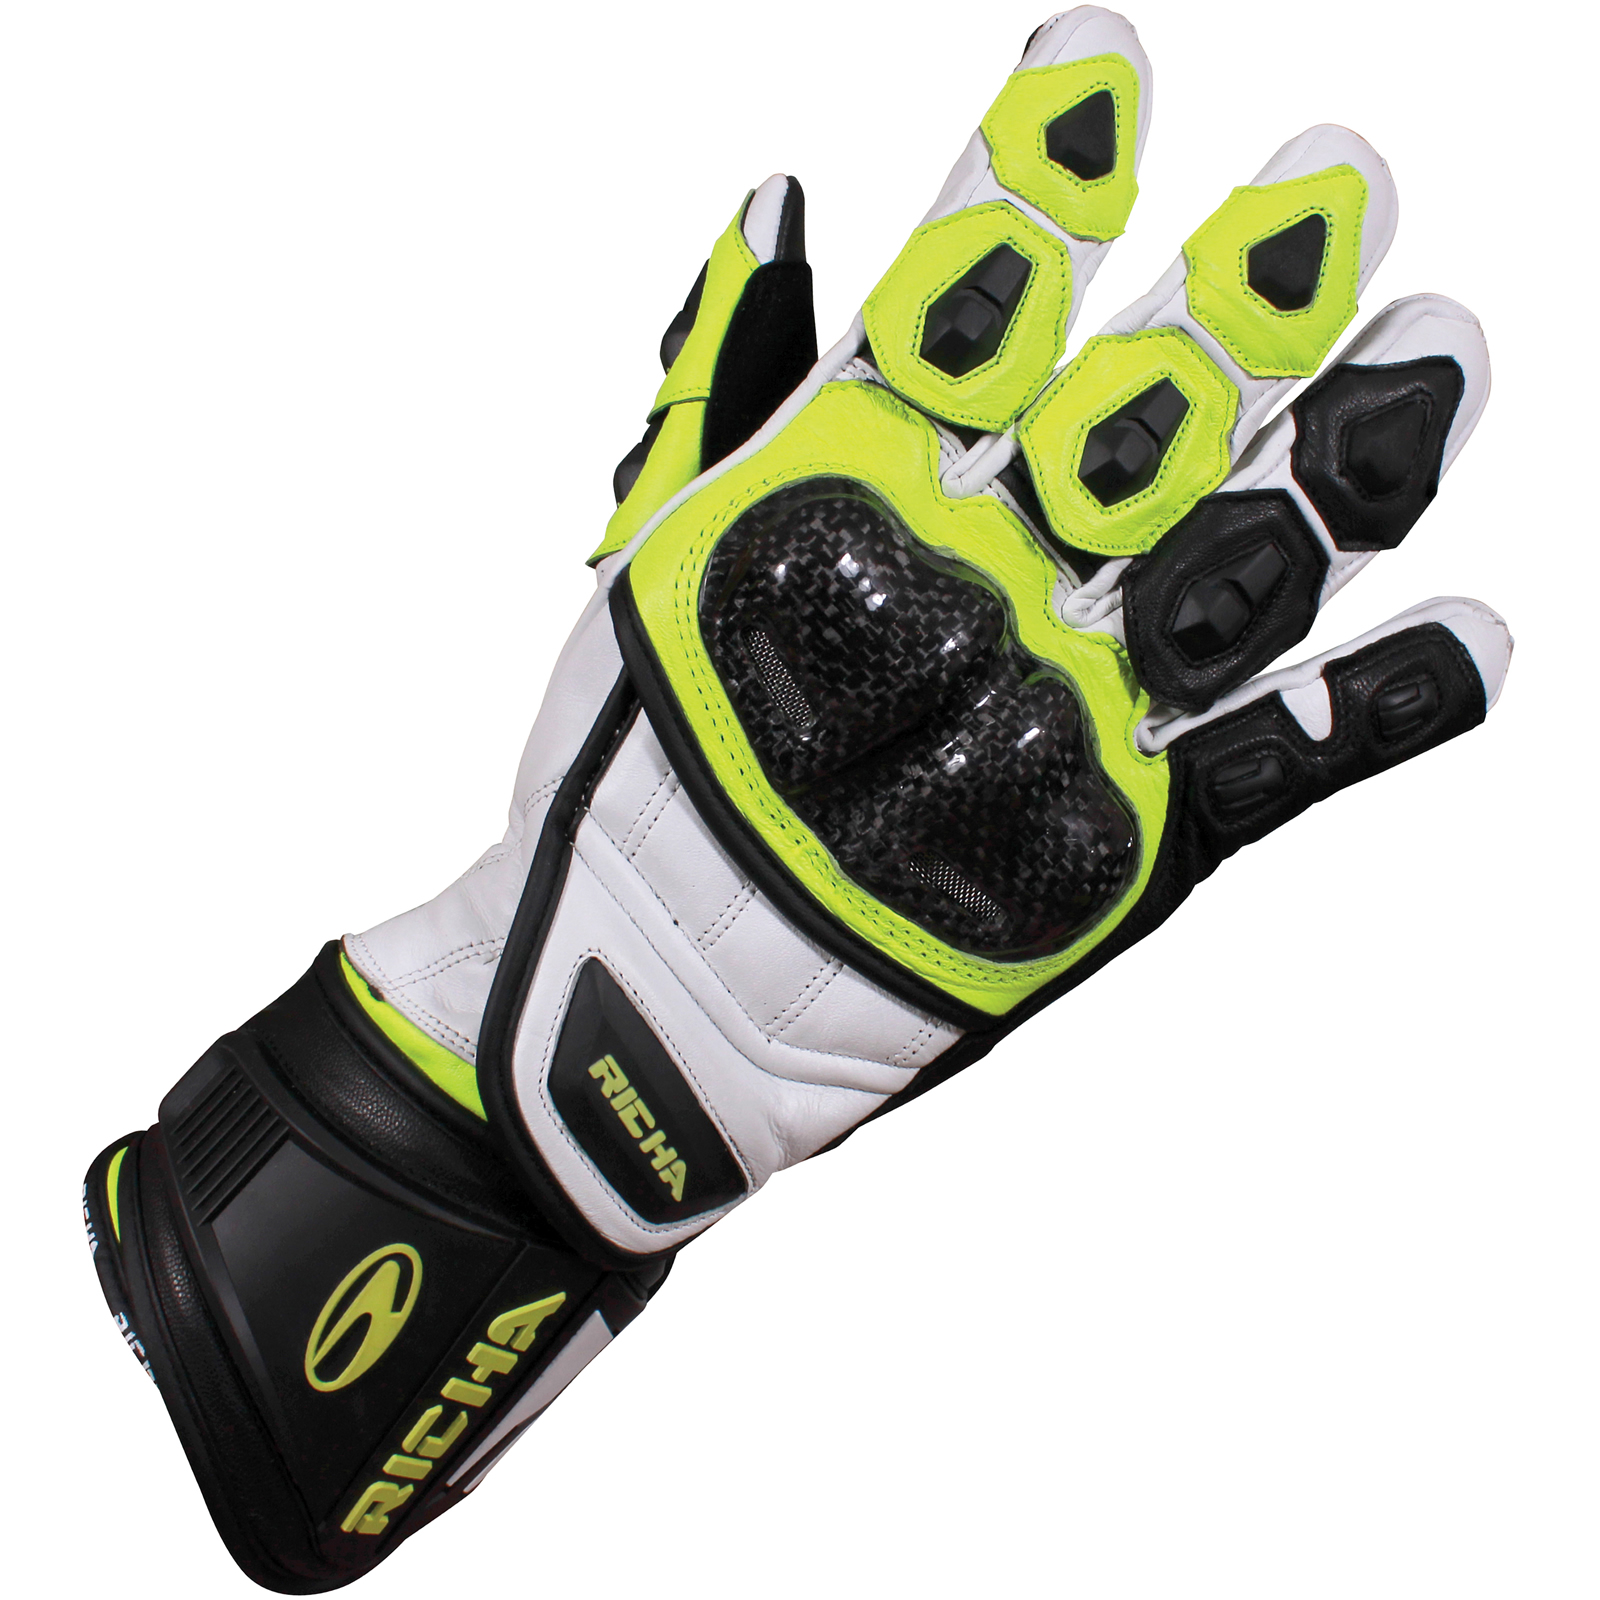 Leather motorcycle gloves best -  Racer Motorbike Gloves Caferacer Wbi